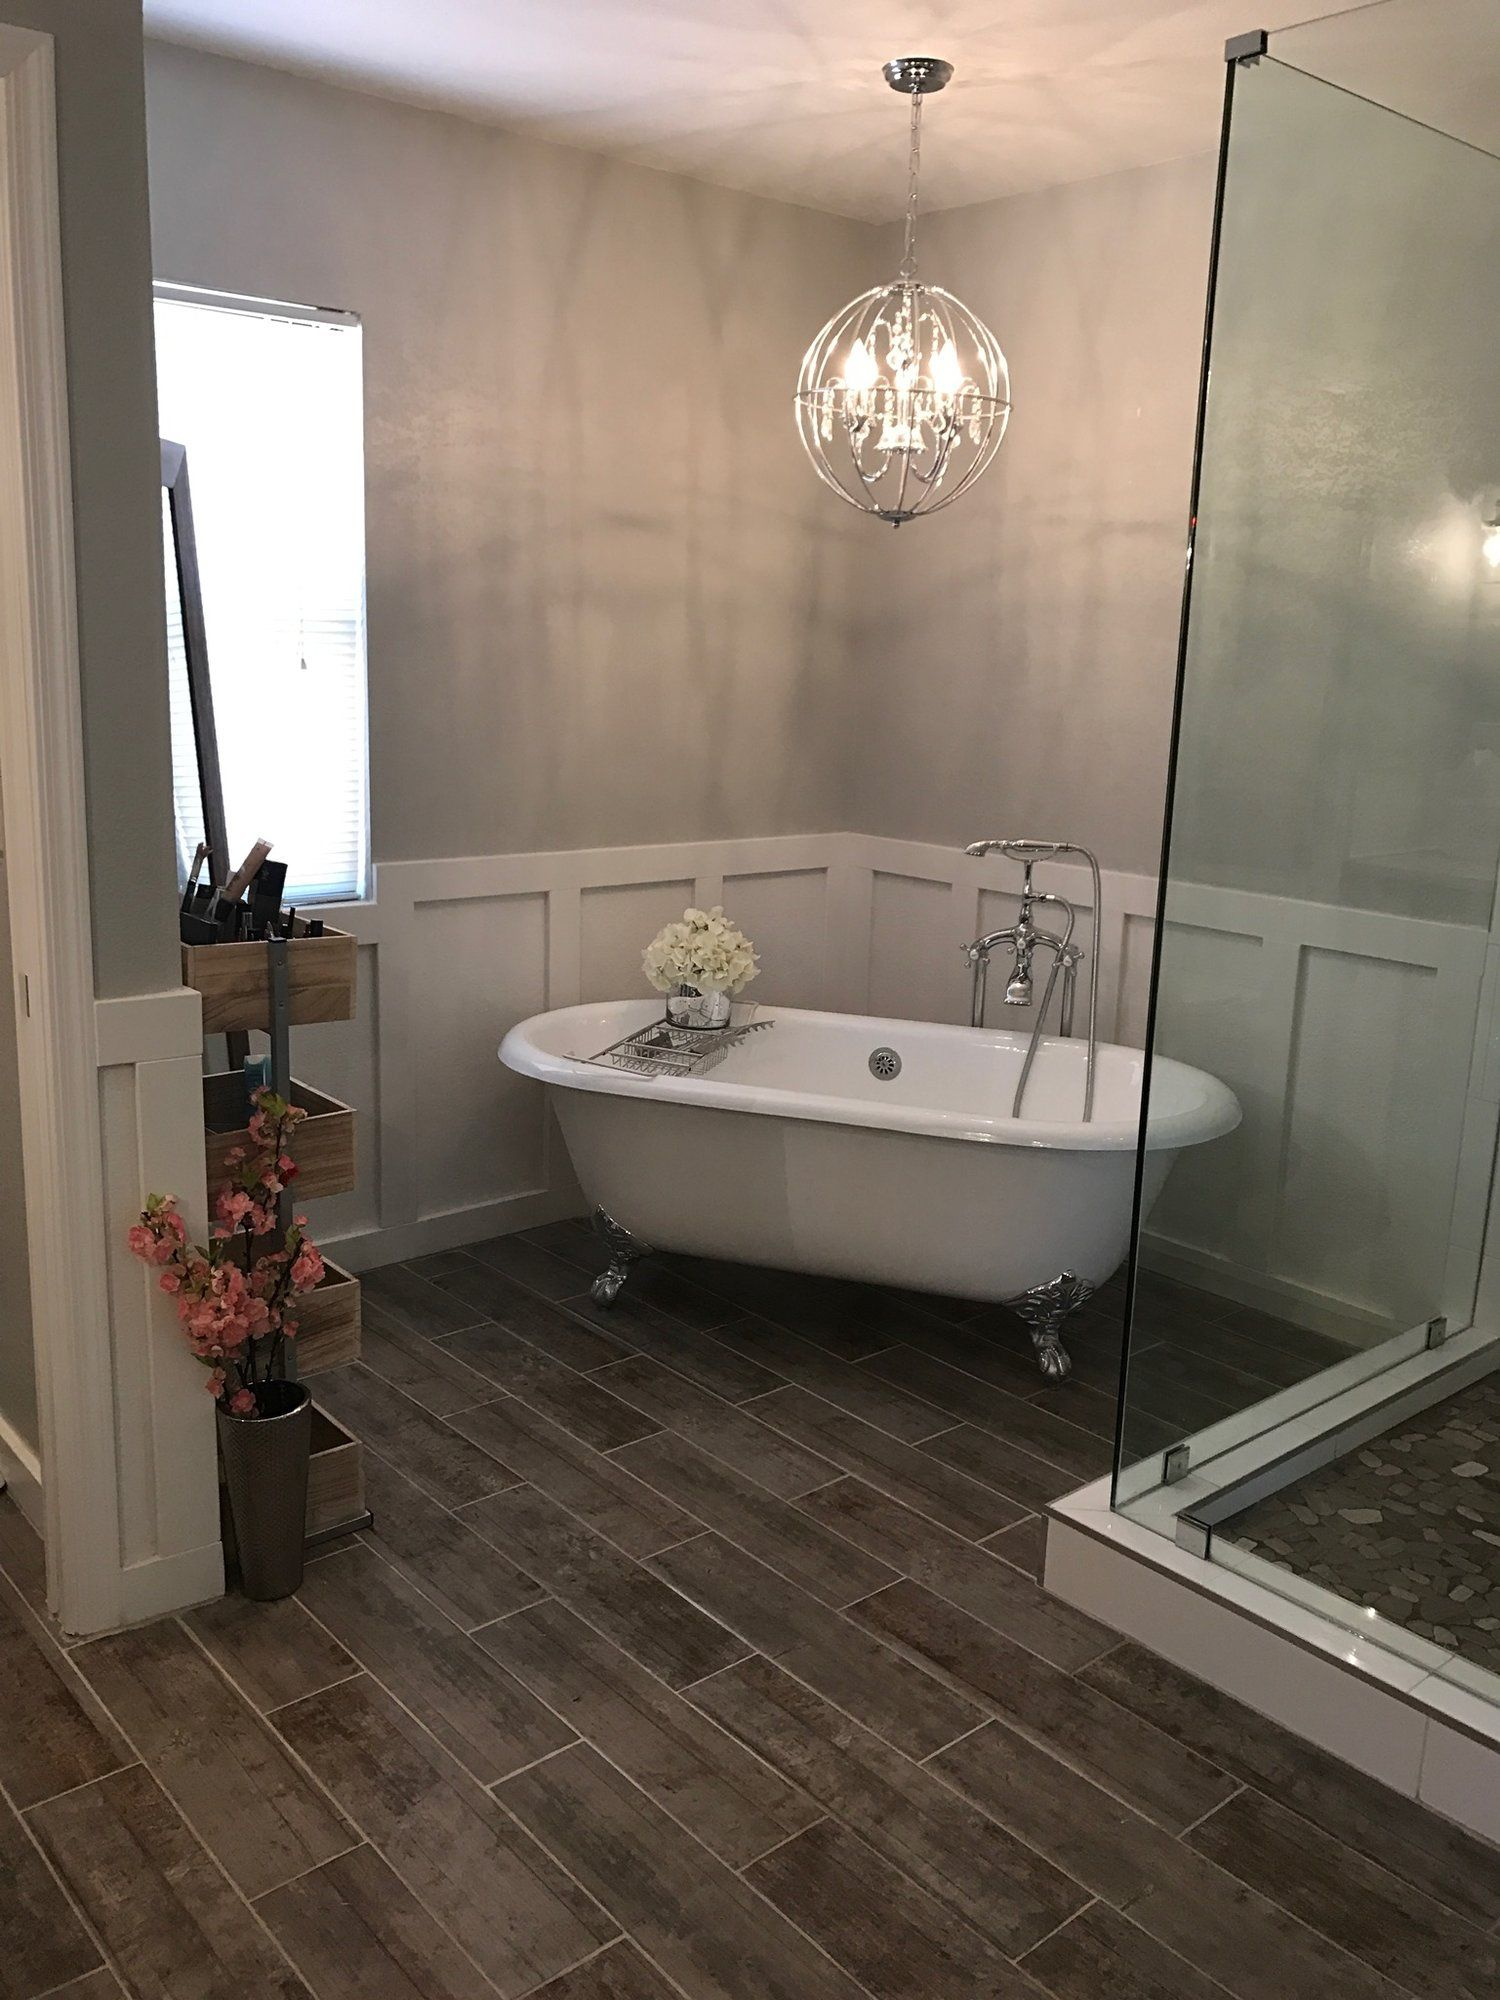 Clawfoot Tub Master Bathroom Remodel Bathtub Chandelier Makeup Home Sweet Home